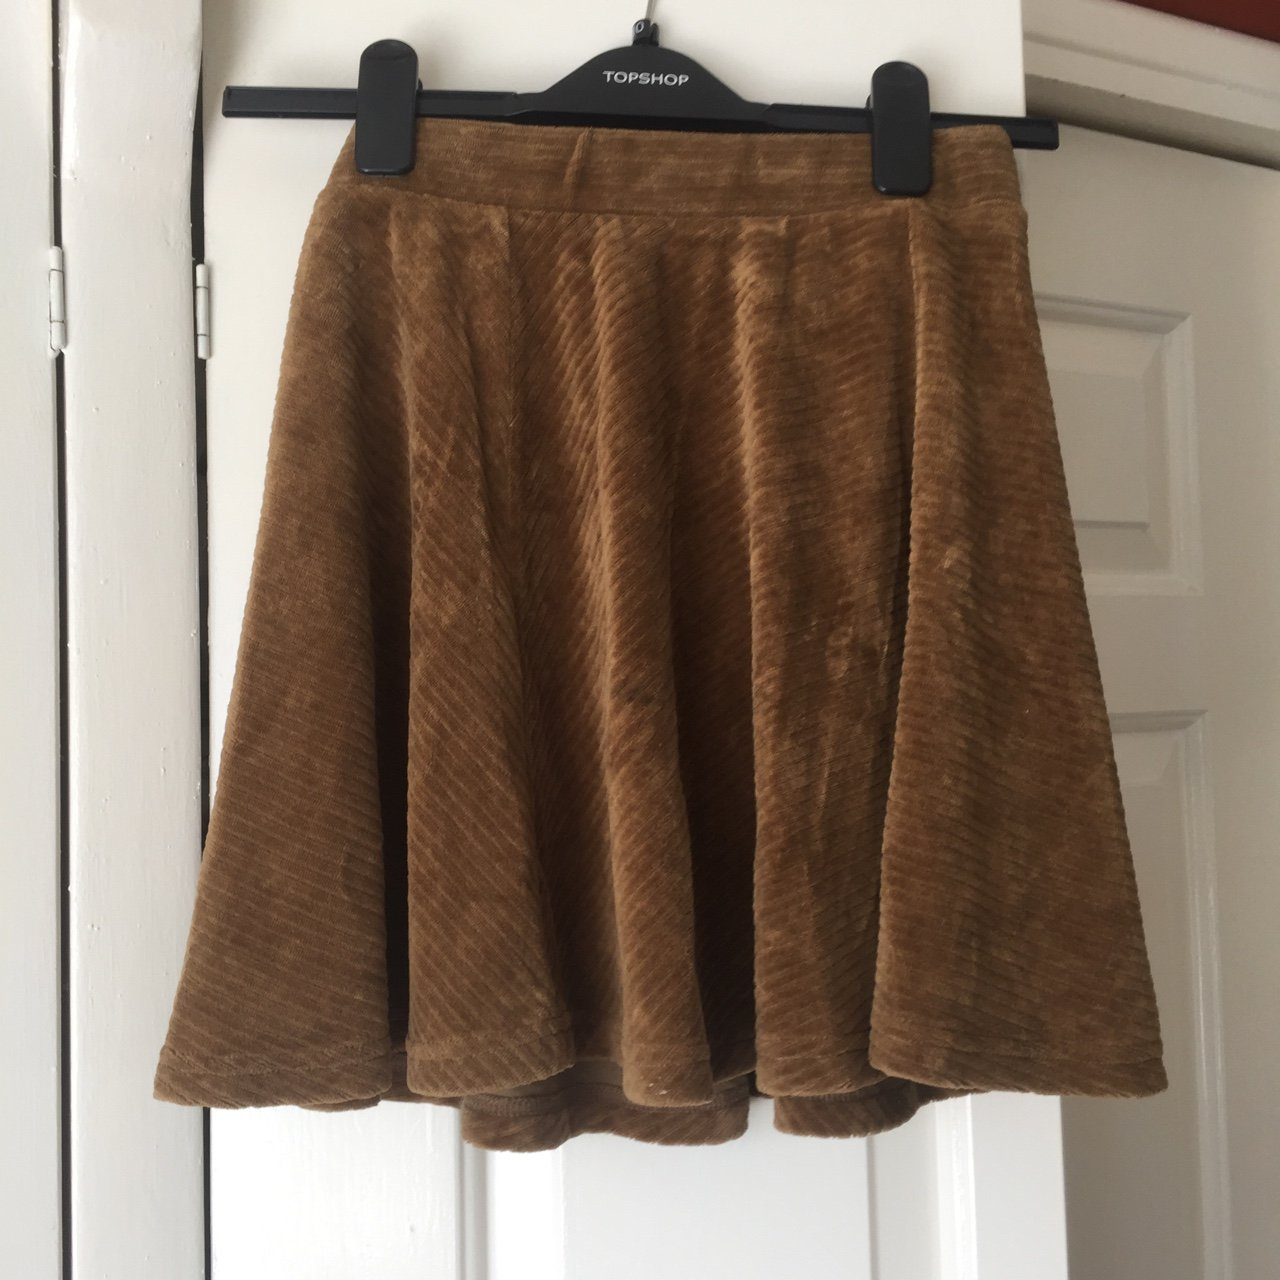 Suede velvet light brown skater skirt from Topshop. Free - Depop f858a5f41